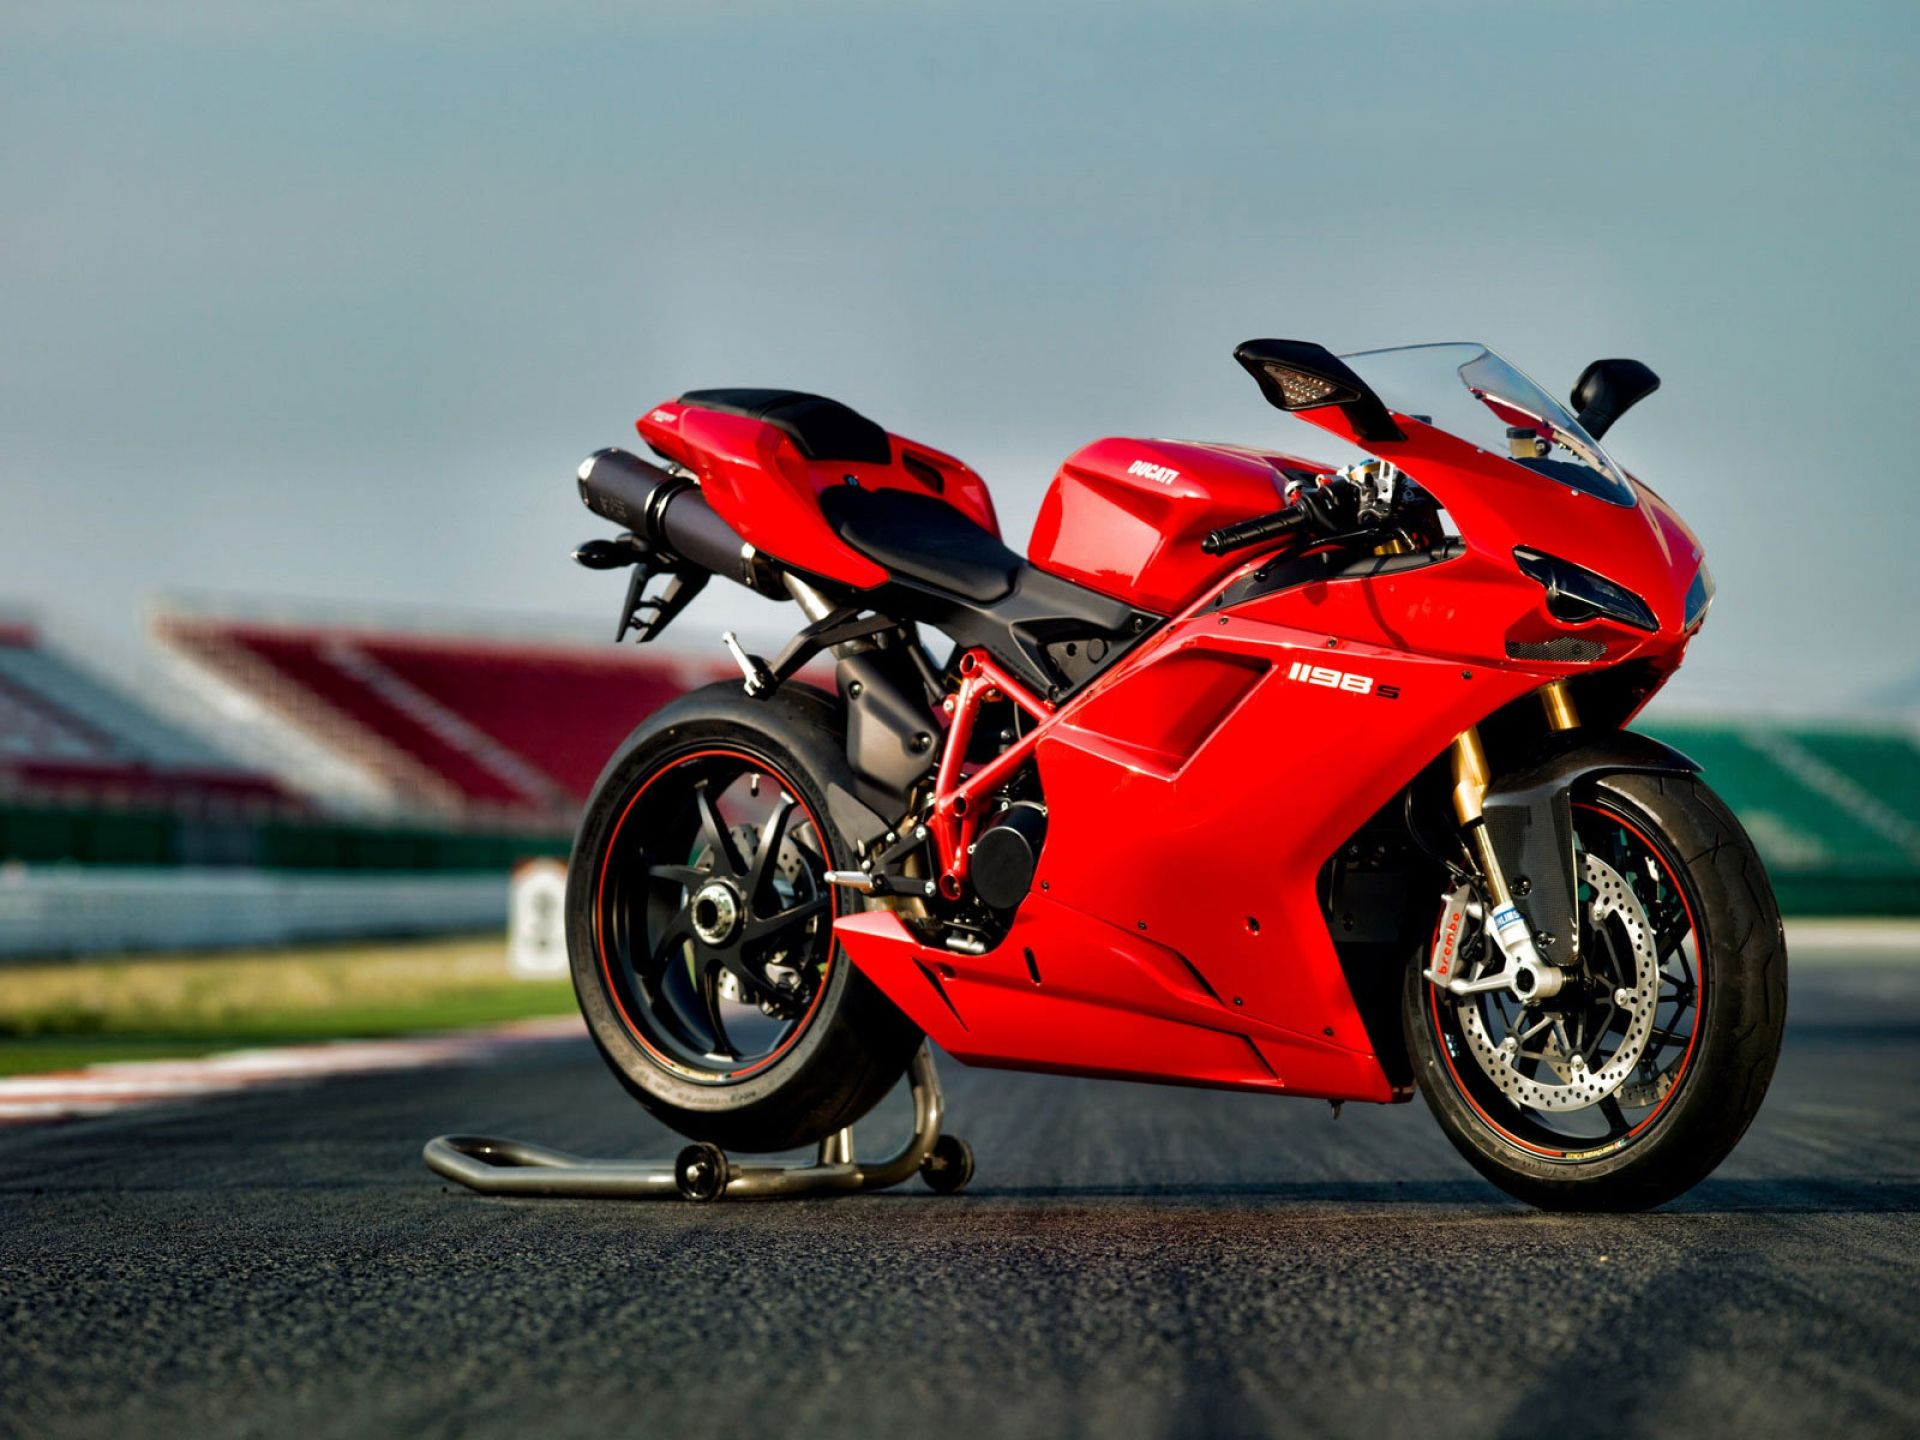 Ducati Wallpaper Collection 1600×1068 Ducati hd wallpaper ...